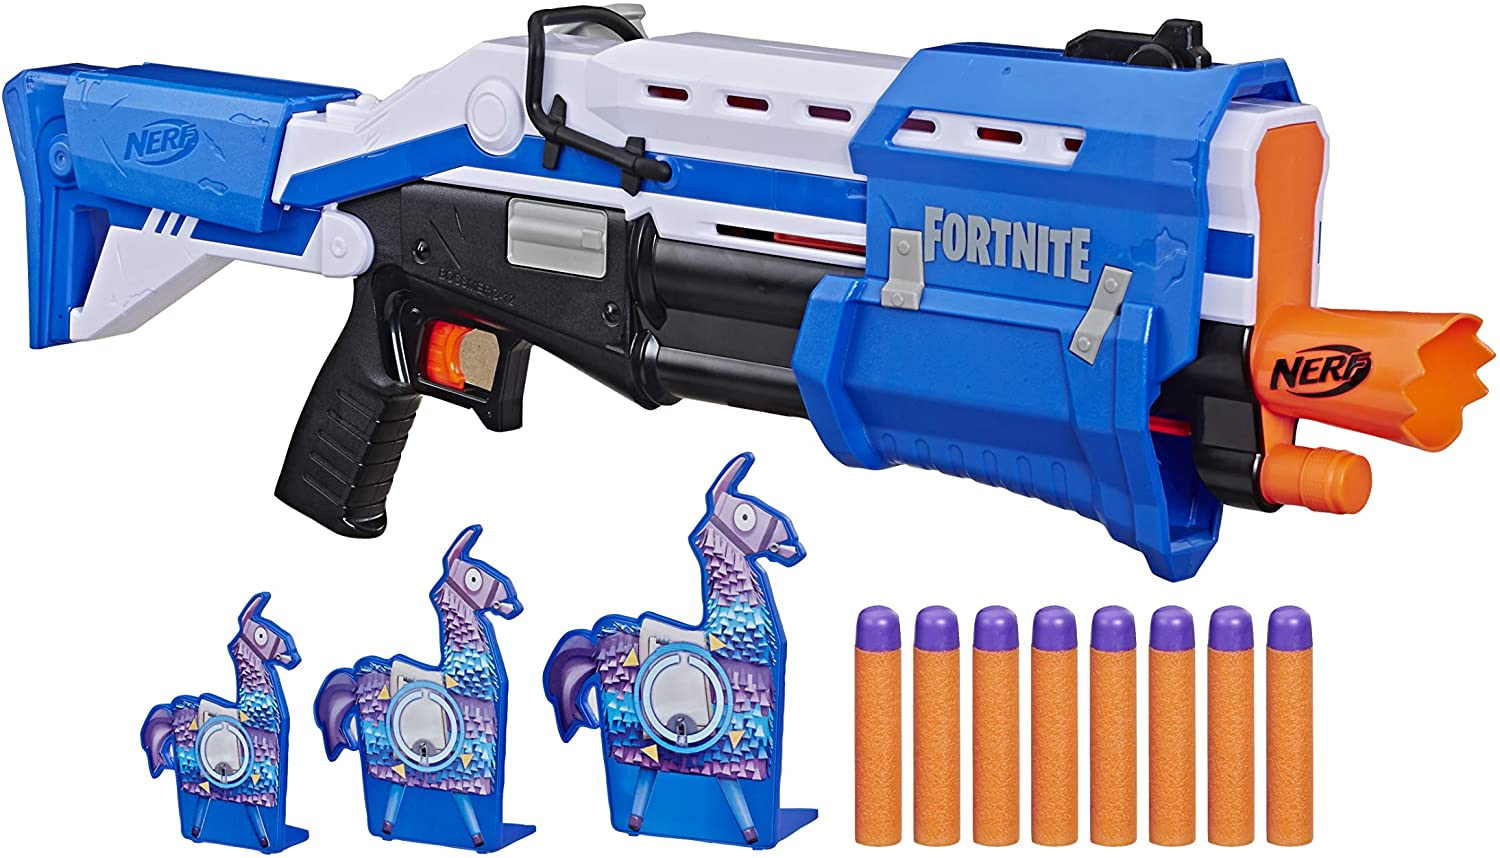 Fortnite TS-R Blaster